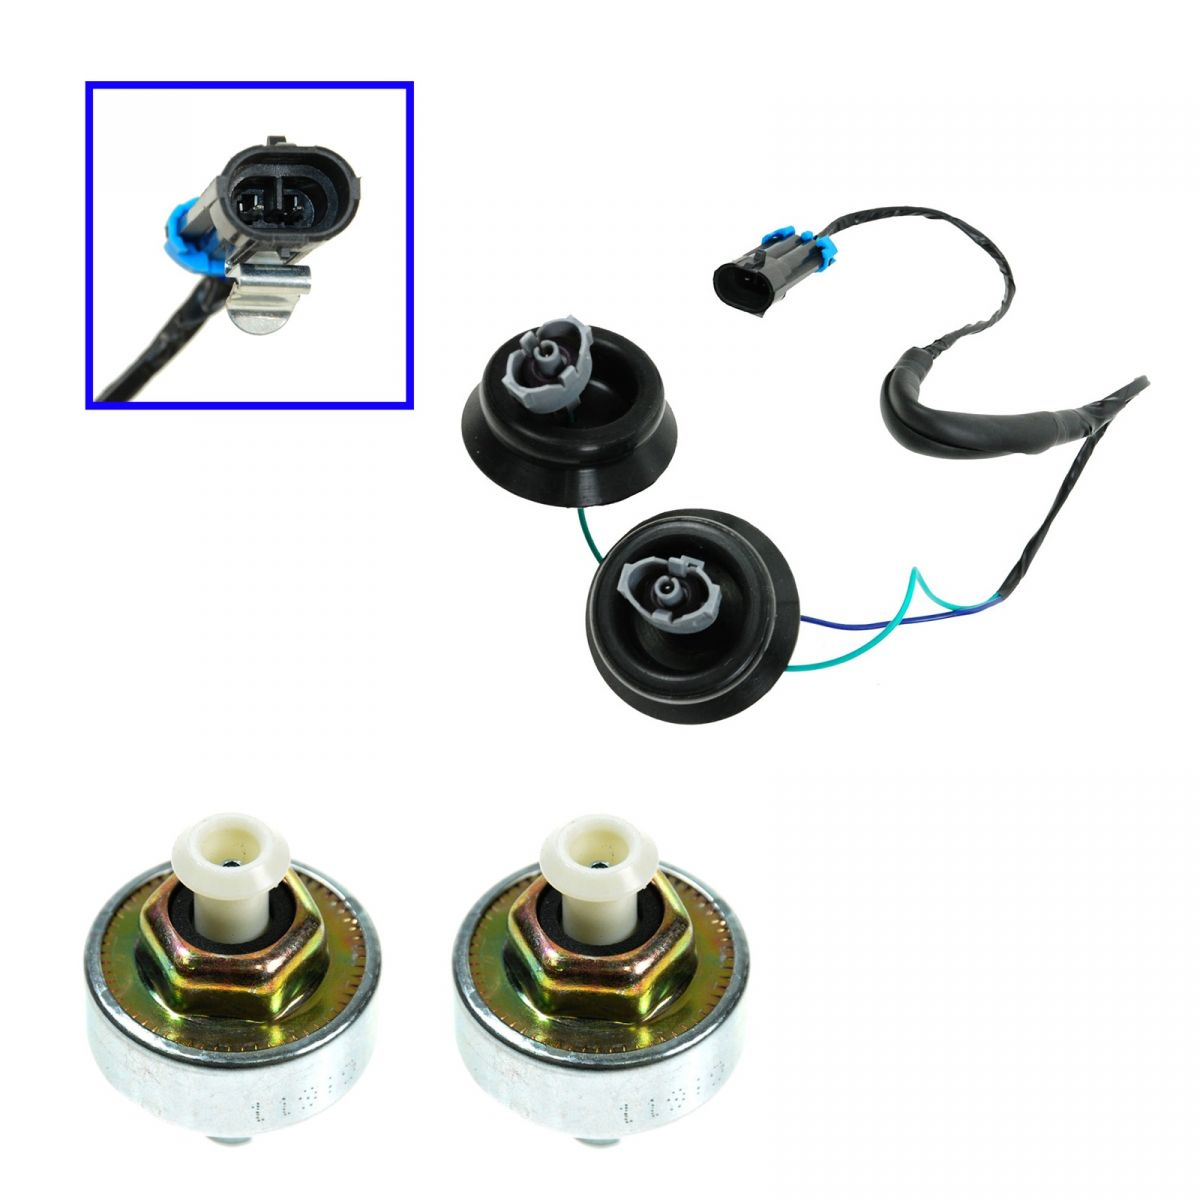 Knock Sensor with Harness Pair Kit Set for Chevy GMC Silverado Sierra Cadillac